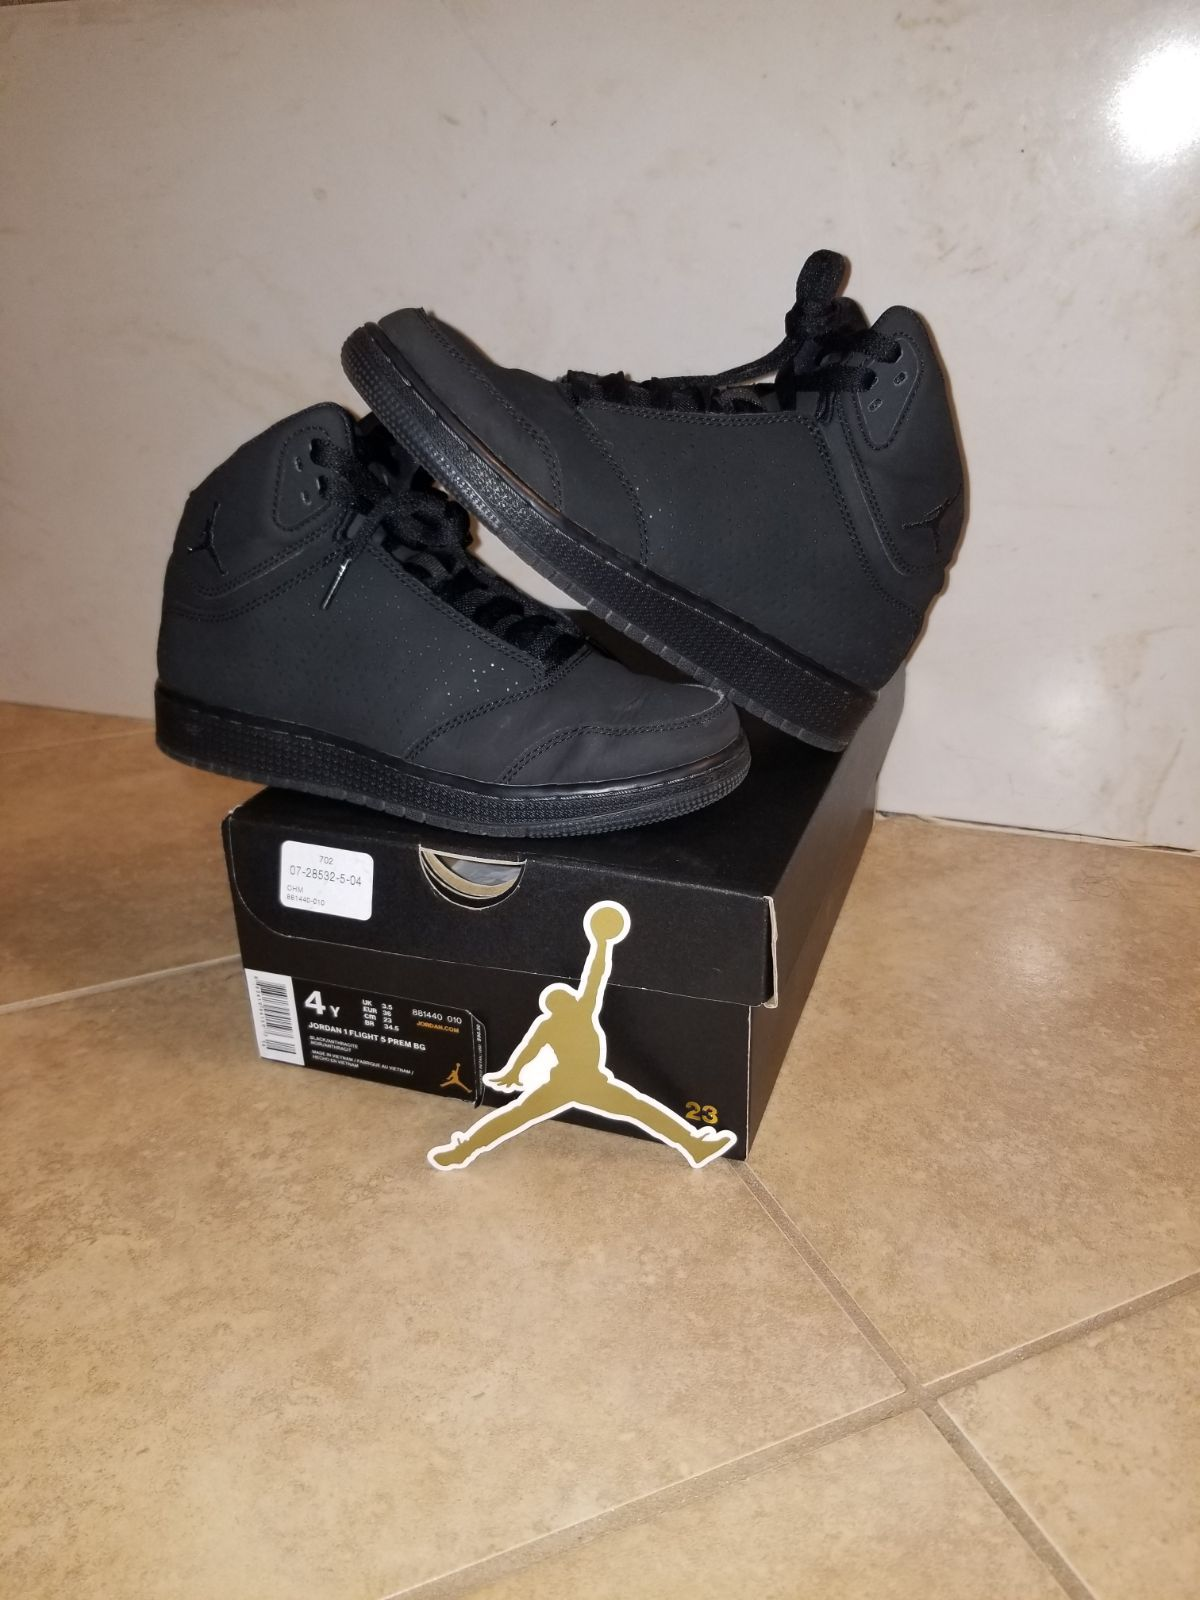 Pre owned Black Flight Jordan's size 4 youth shoes they are ...